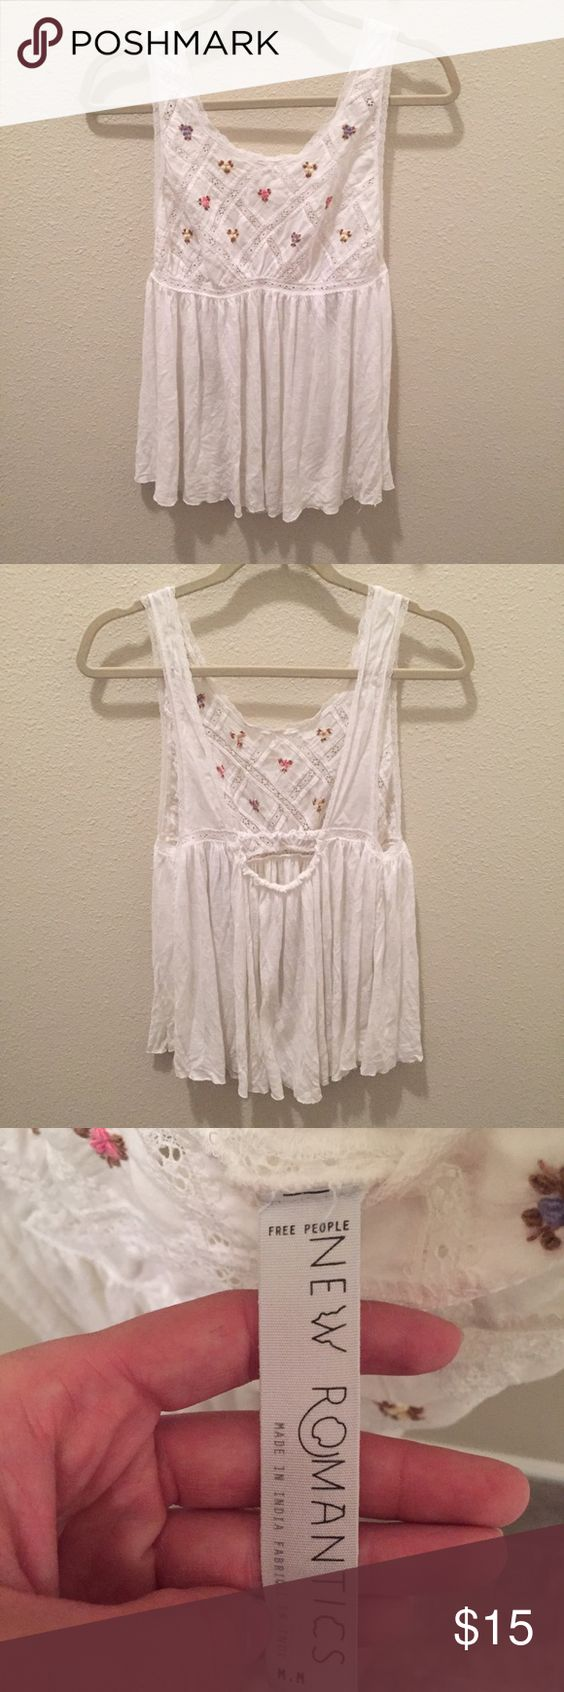 Free People Tank Tank from New Romantics by Free People. In good used condition! Free People Tops Tank Tops